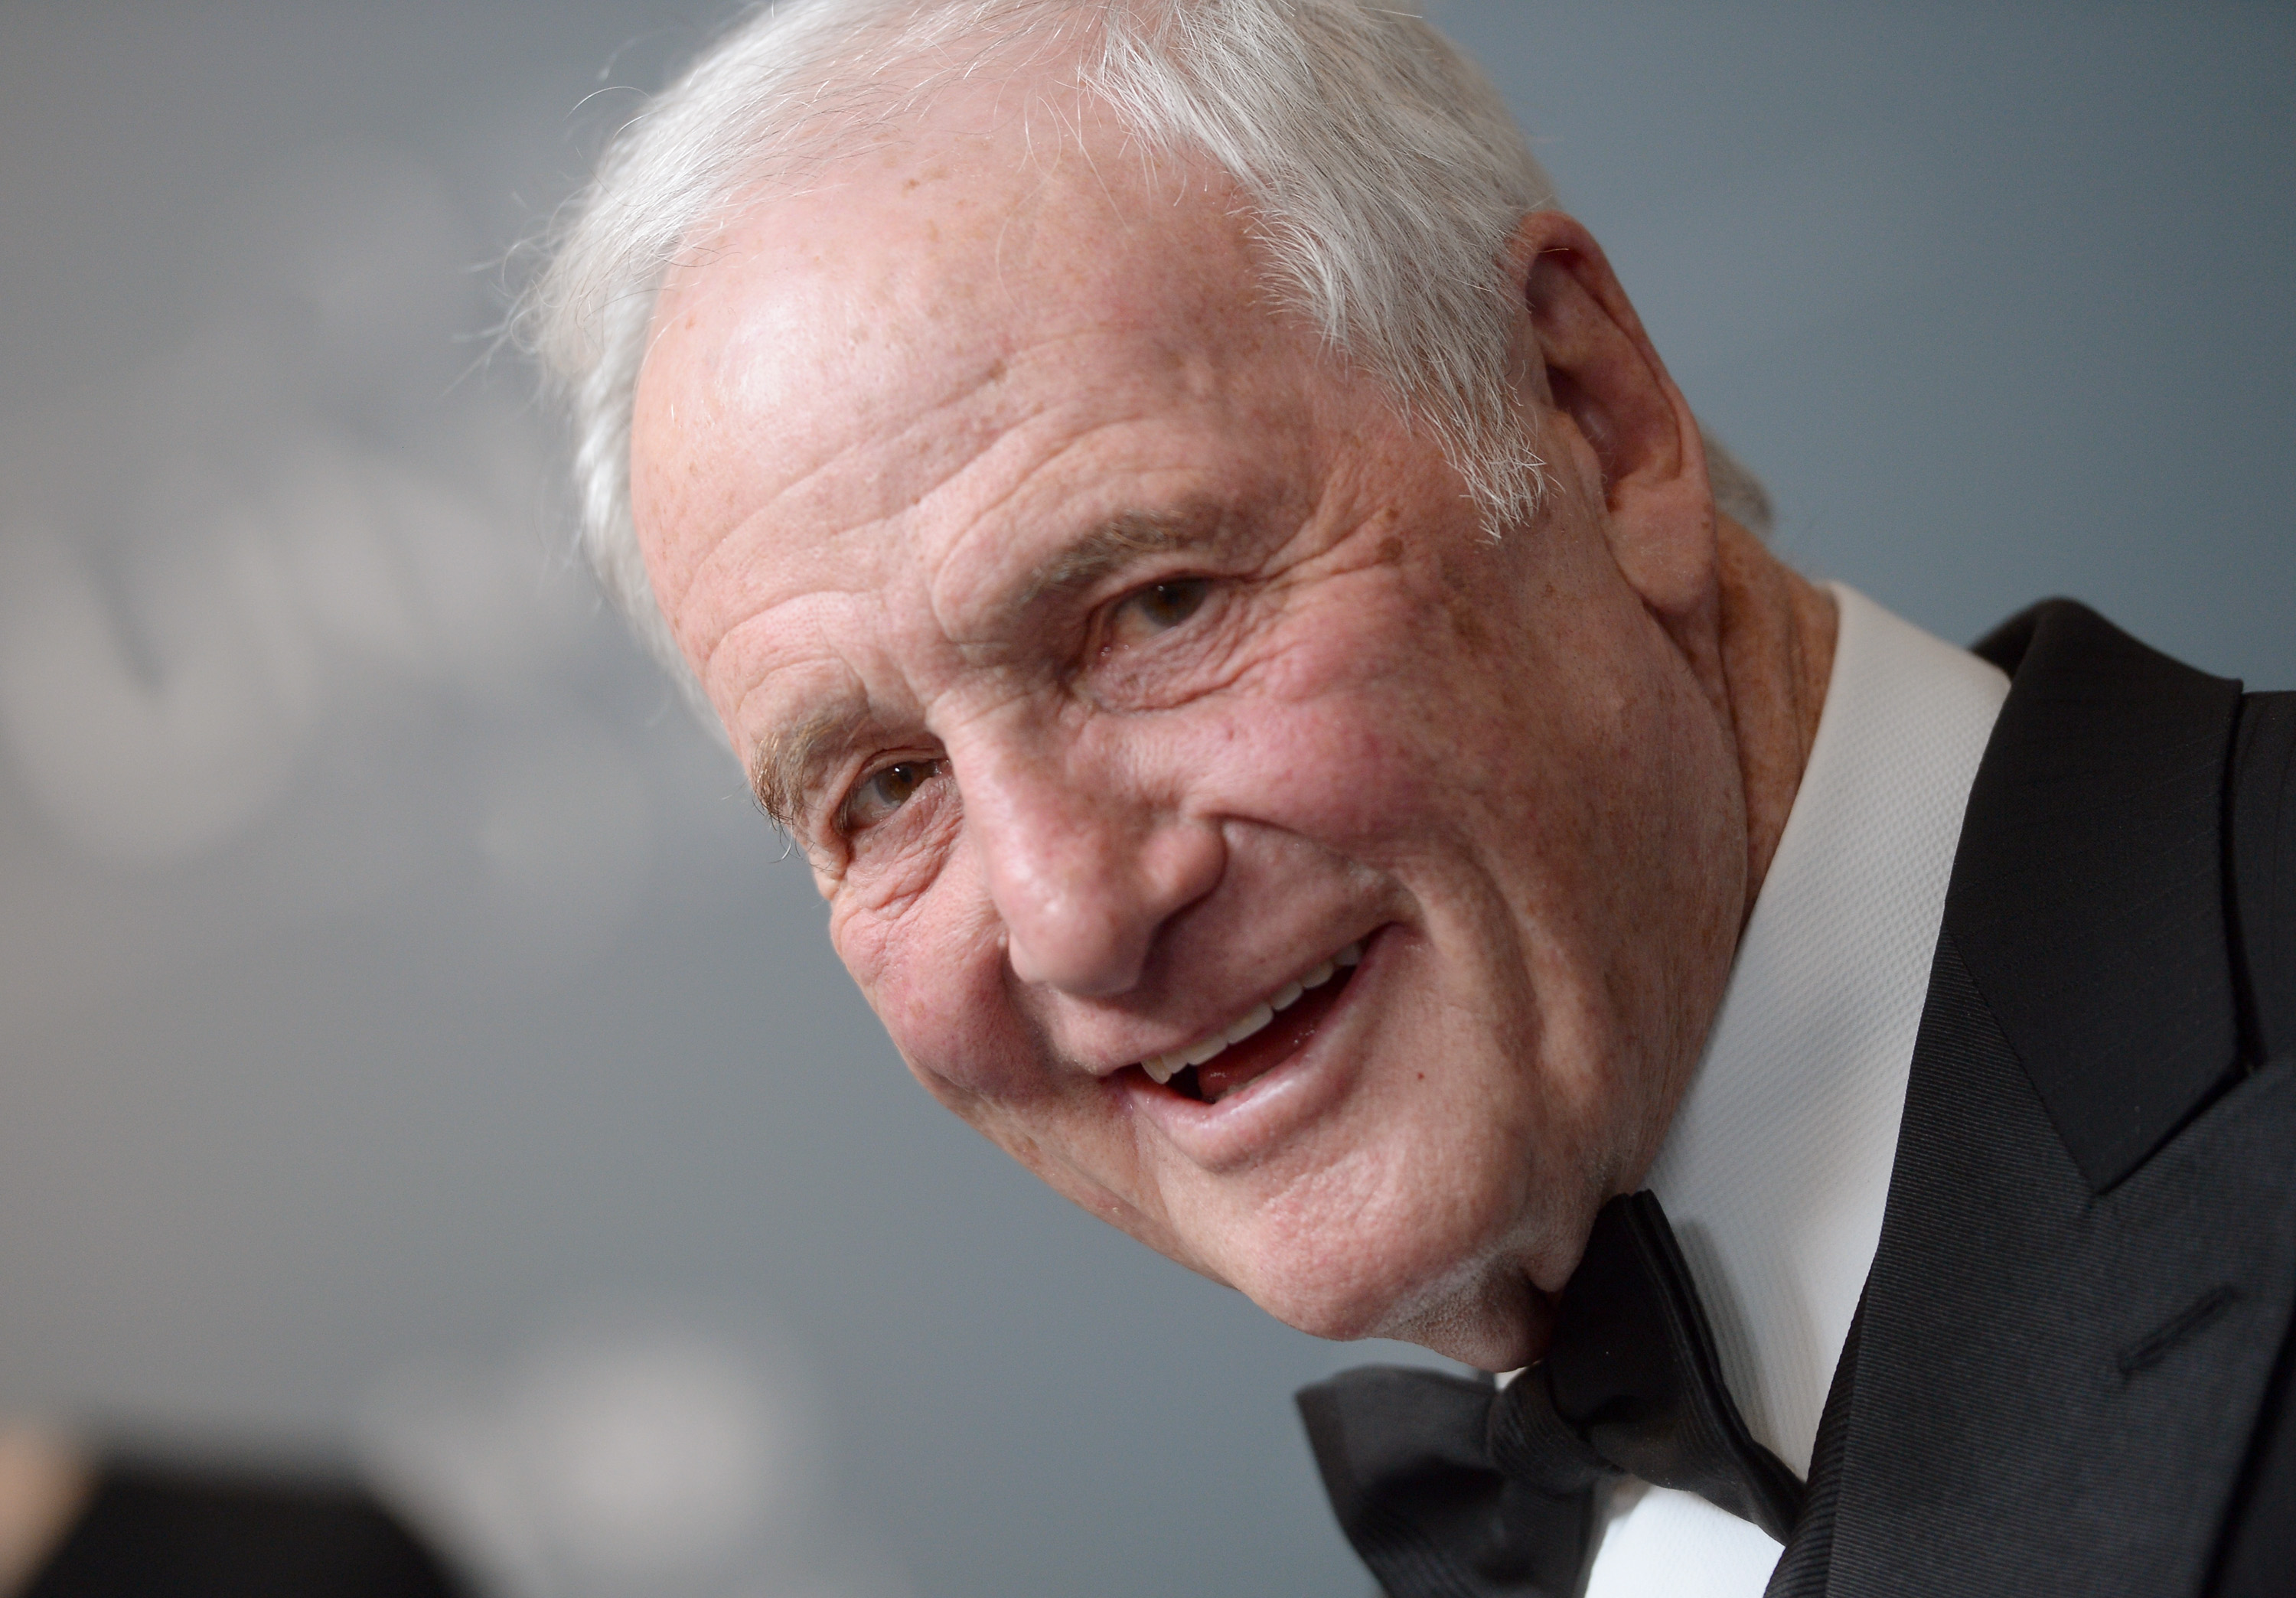 BEVERLY HILLS, CA - JANUARY 14:  Emcee and Danny Kaye Humanitarian Peace Award presenter Jerry Weintraub attends the 2014 UNI